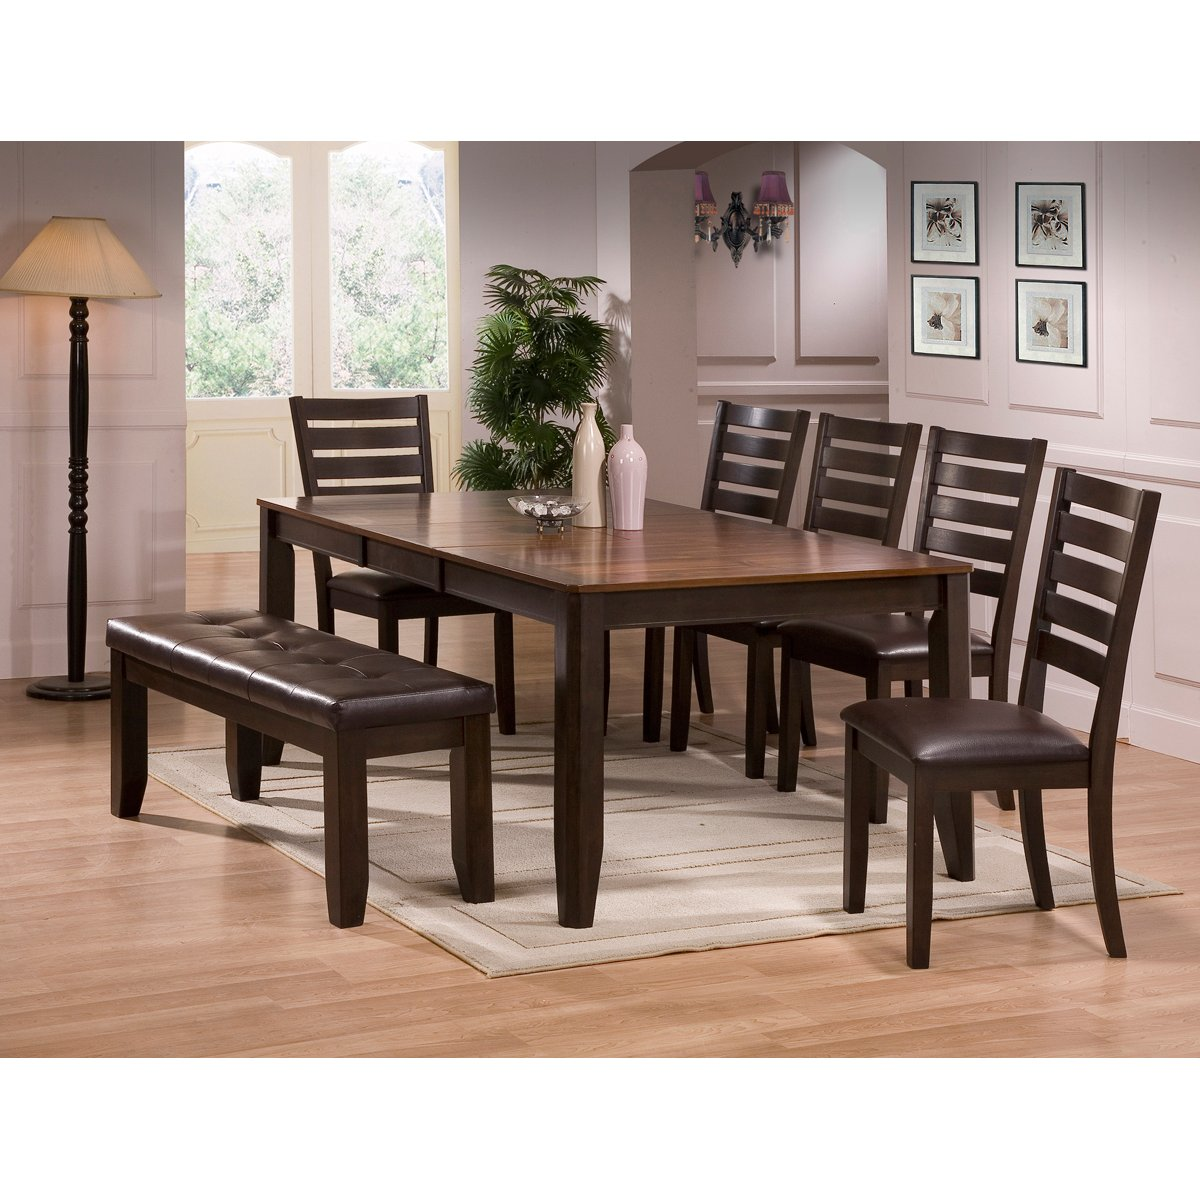 ... Brown 6 Piece Dining Set With Bench   Elliott Collection ... Part 93